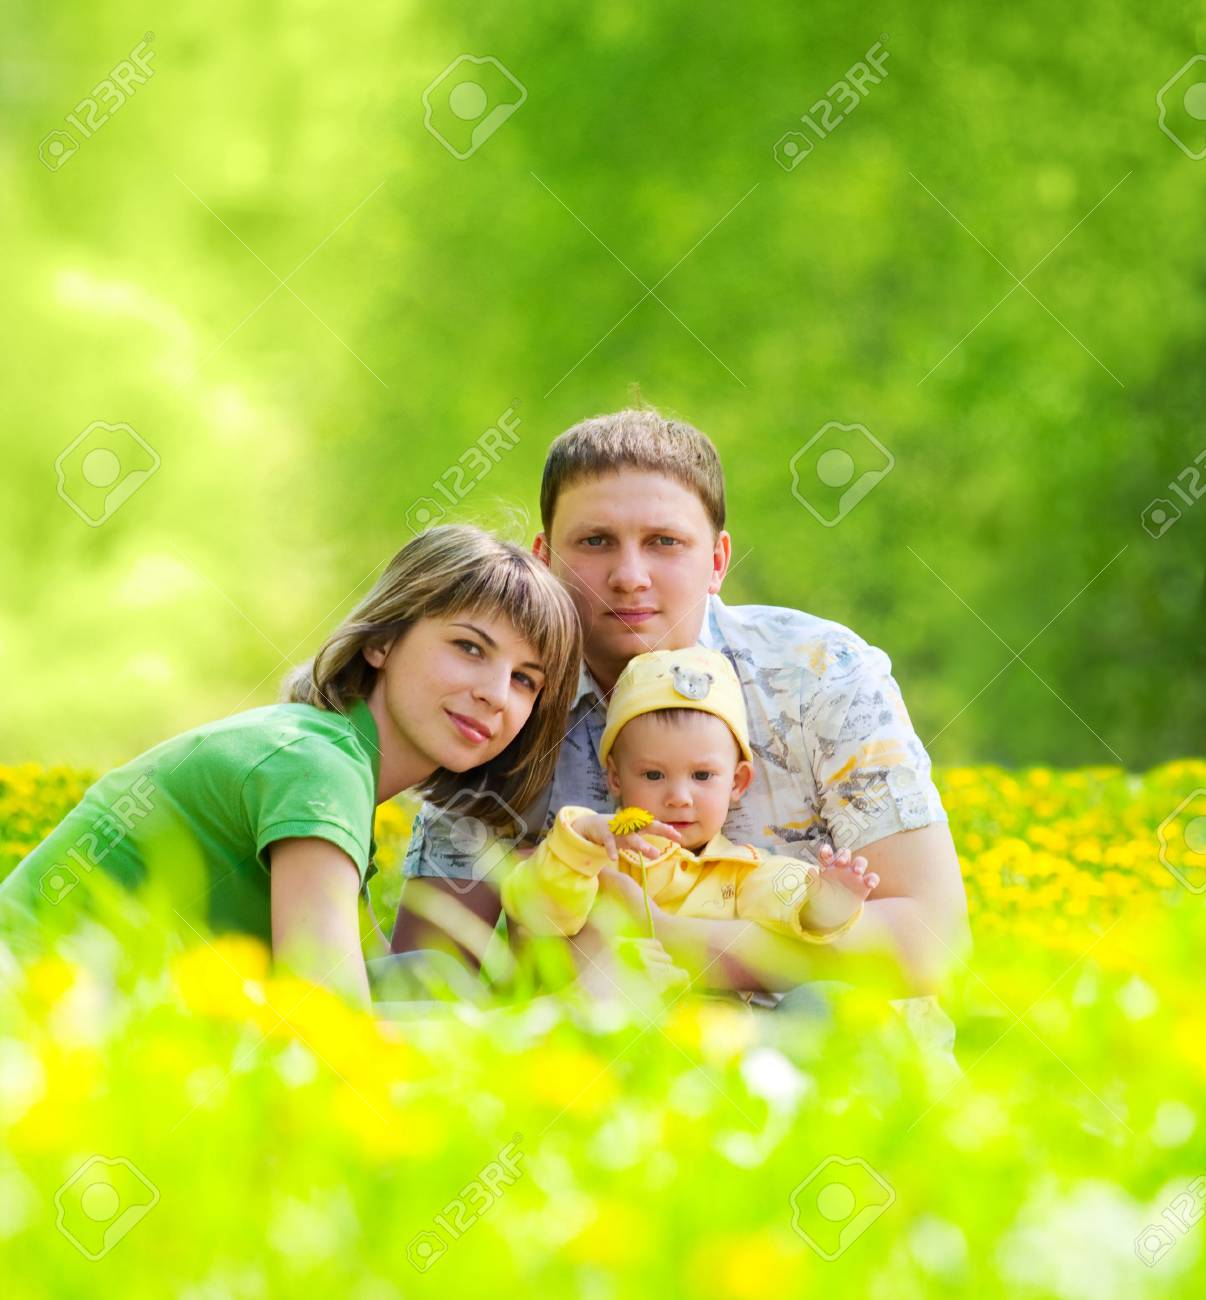 young family sitting in the grass in the park Stock Photo - 7180366